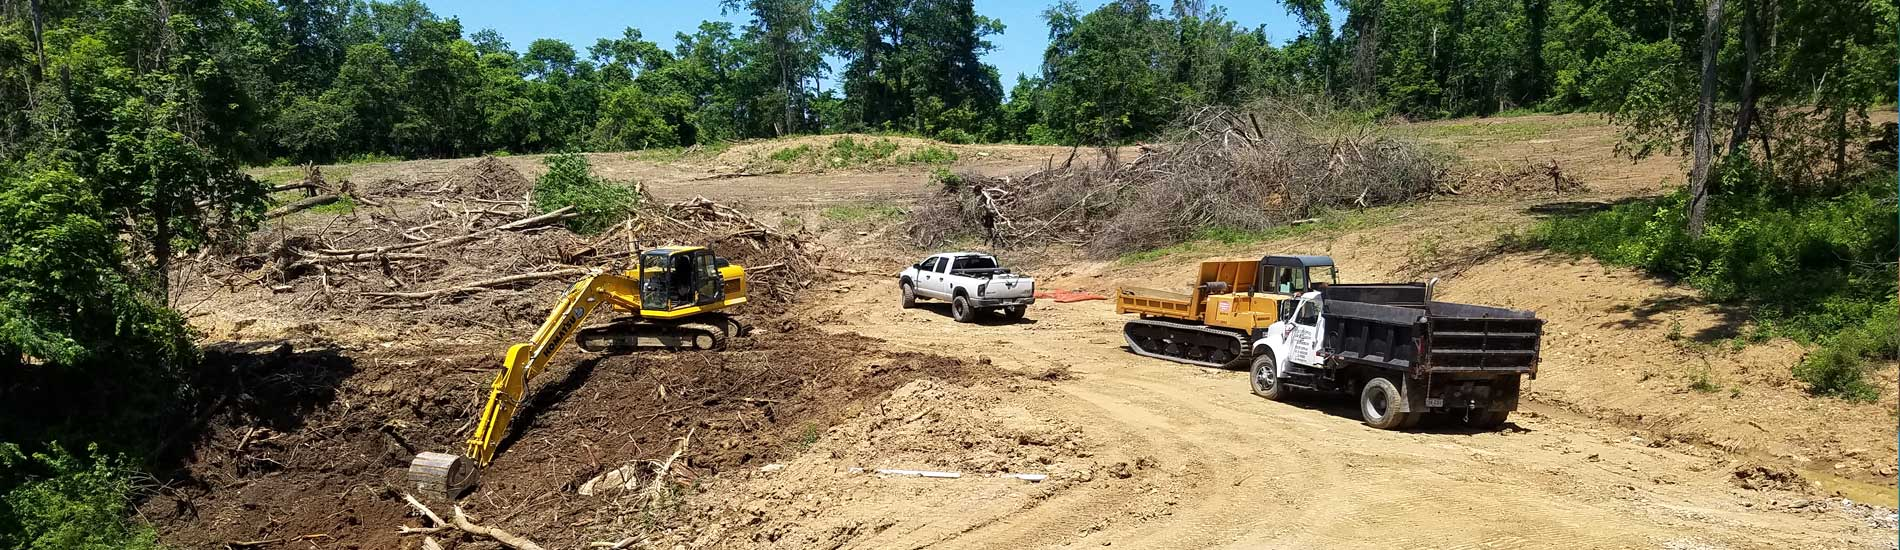 Land clearing and access road building for the exploration of crude oil / natural gas